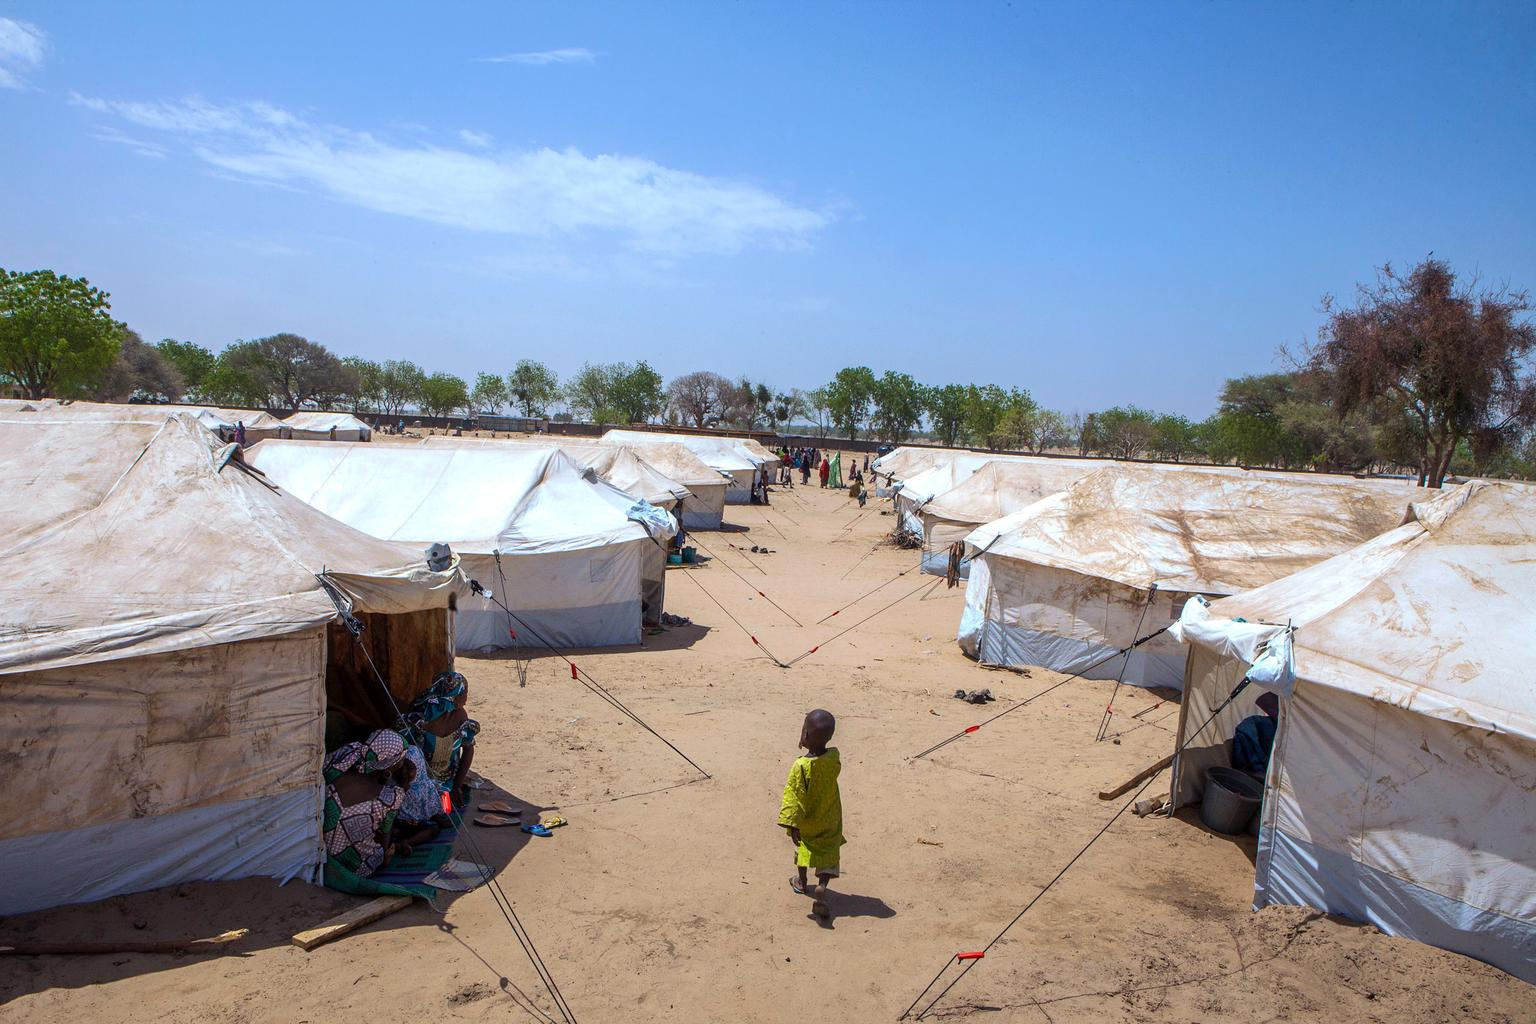 A child walks between rows of tent shelters in the UNICEF-supported Dalori camp for internally displaced people, in the north-eastern city of Maiduguri, Nigeria.